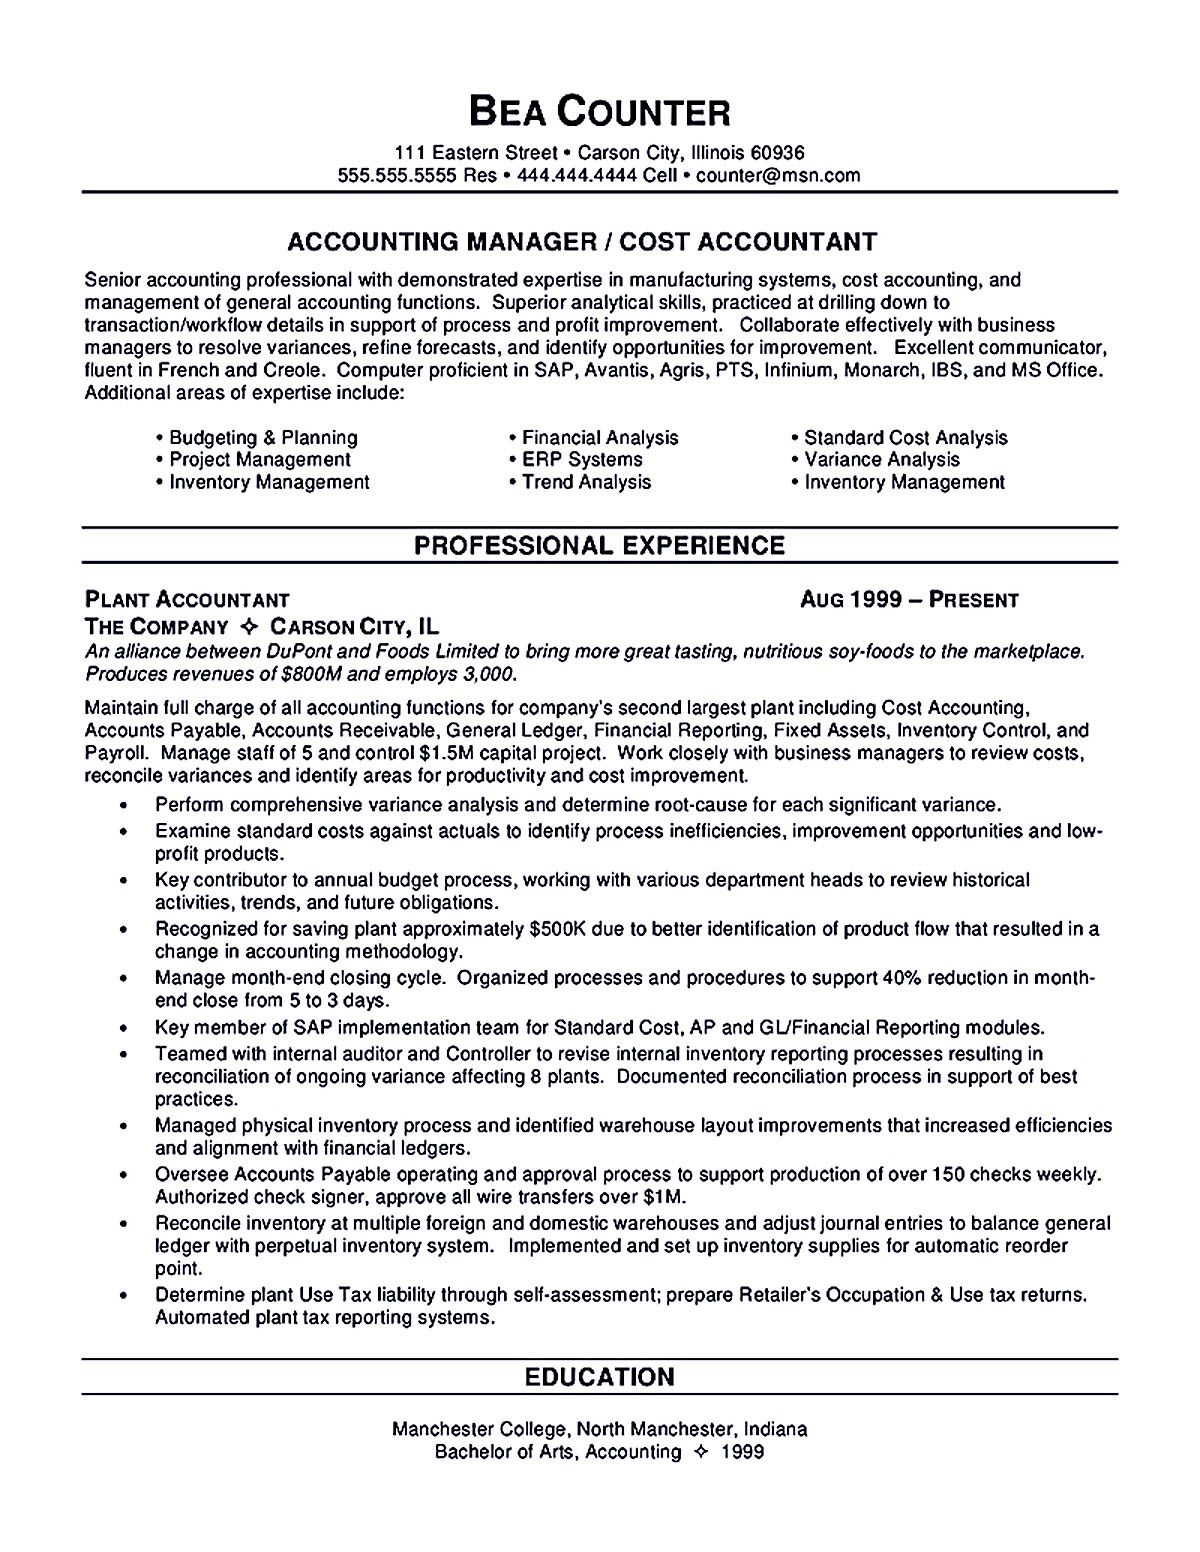 Accountant Resume Template Accounts Payable Resume Template Accountant Resume Template Here